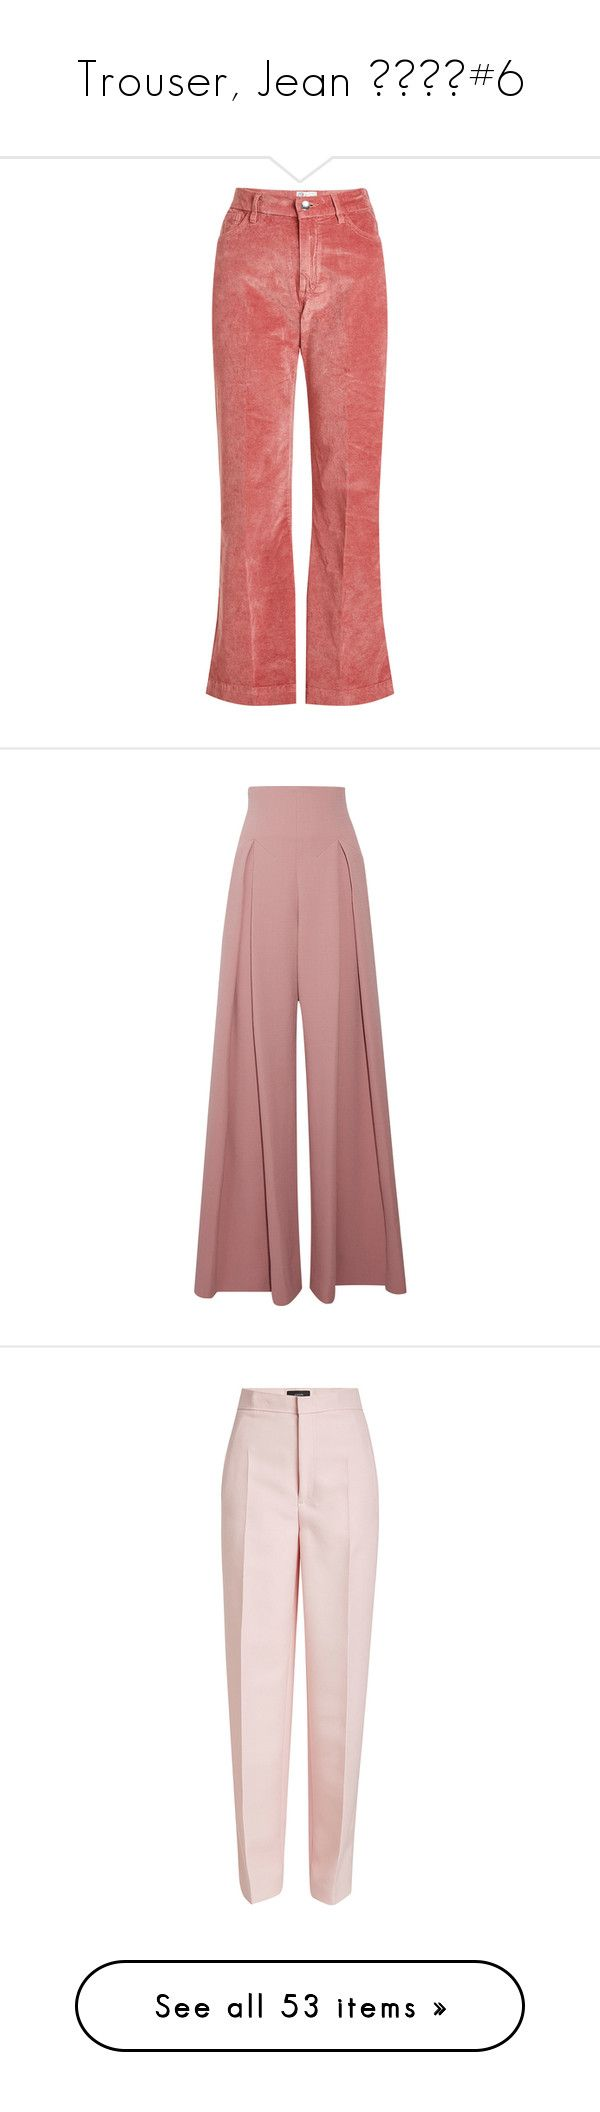 """""""Trouser, Jean 👖👖🌡🌡#6"""" by janelee8598 ❤ liked on Polyvore featuring pants, bottoms, trousers, pink, red flare pants, high waisted flared trousers, pink flare pants, velvet flare pants, high waisted pants and emilia wickstead"""